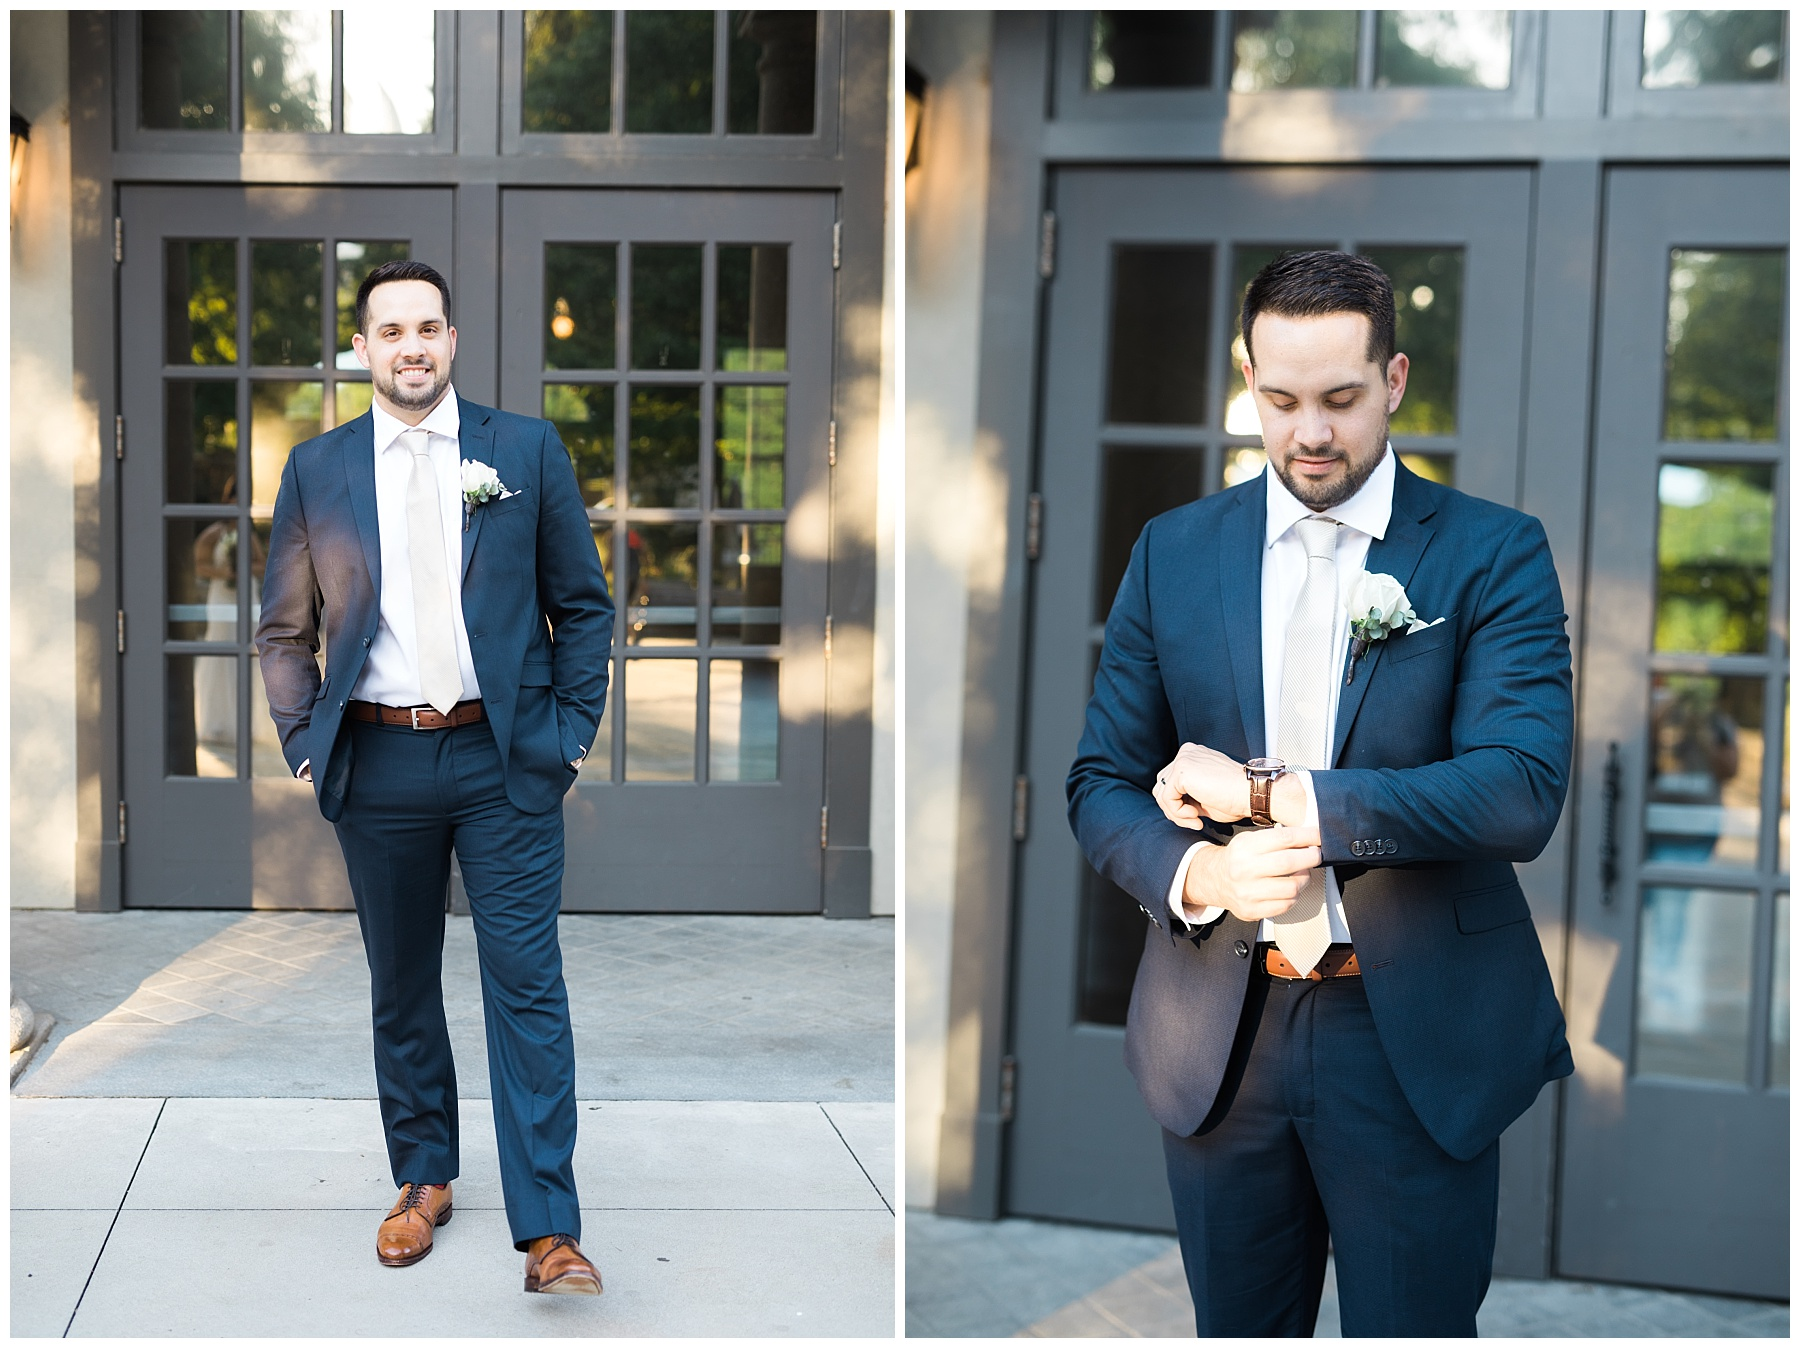 groom marriage wedding suit style elopement atlanta piedmont park midtown